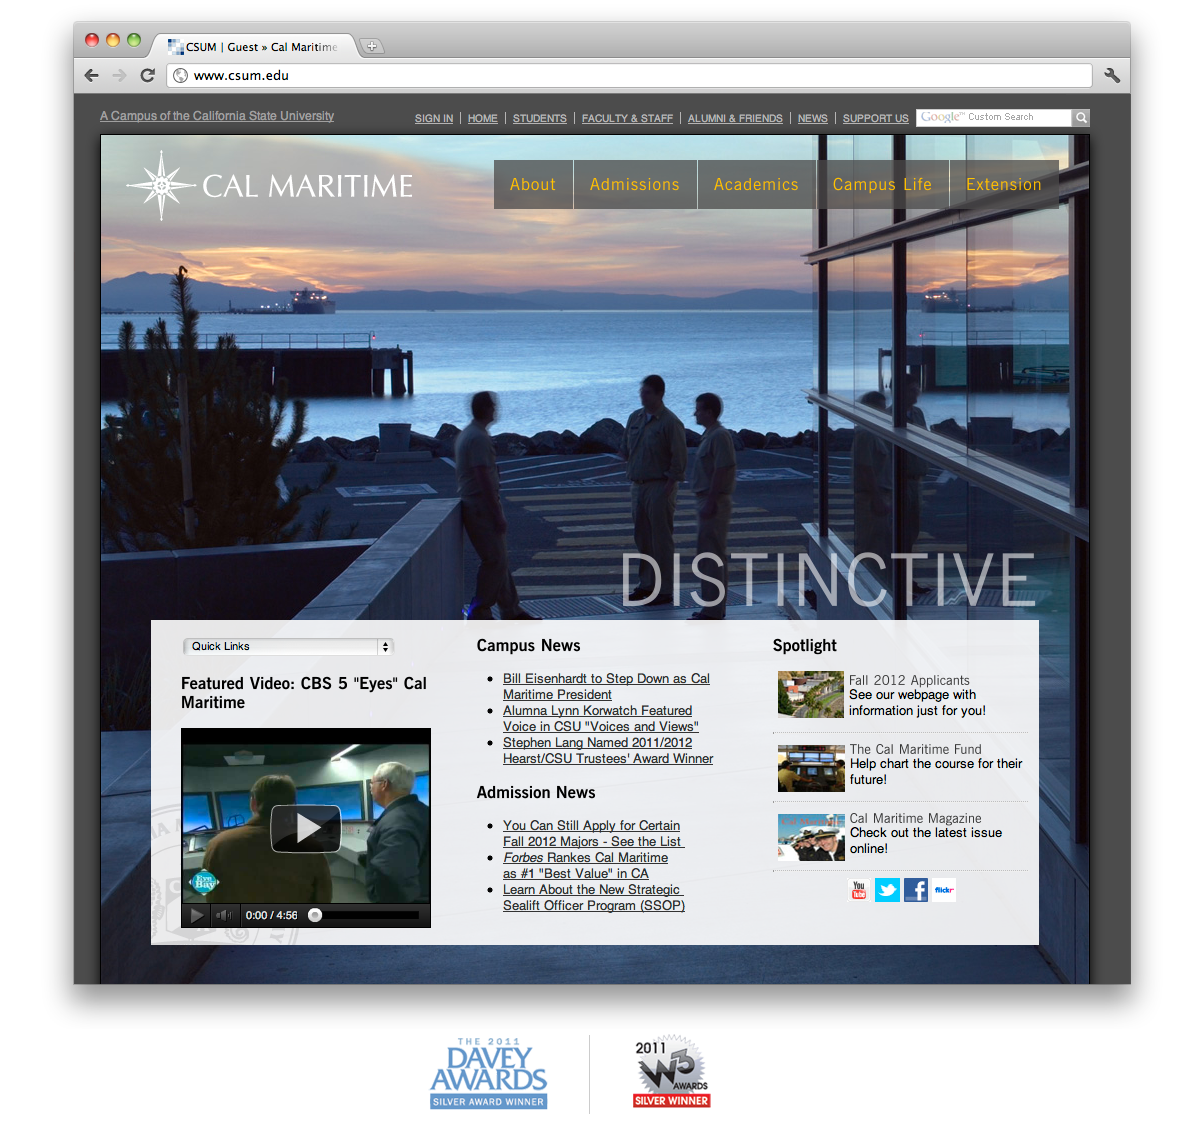 Megamad Website Design Marketing: Project6 Design Awarded Two Honors For Energy And